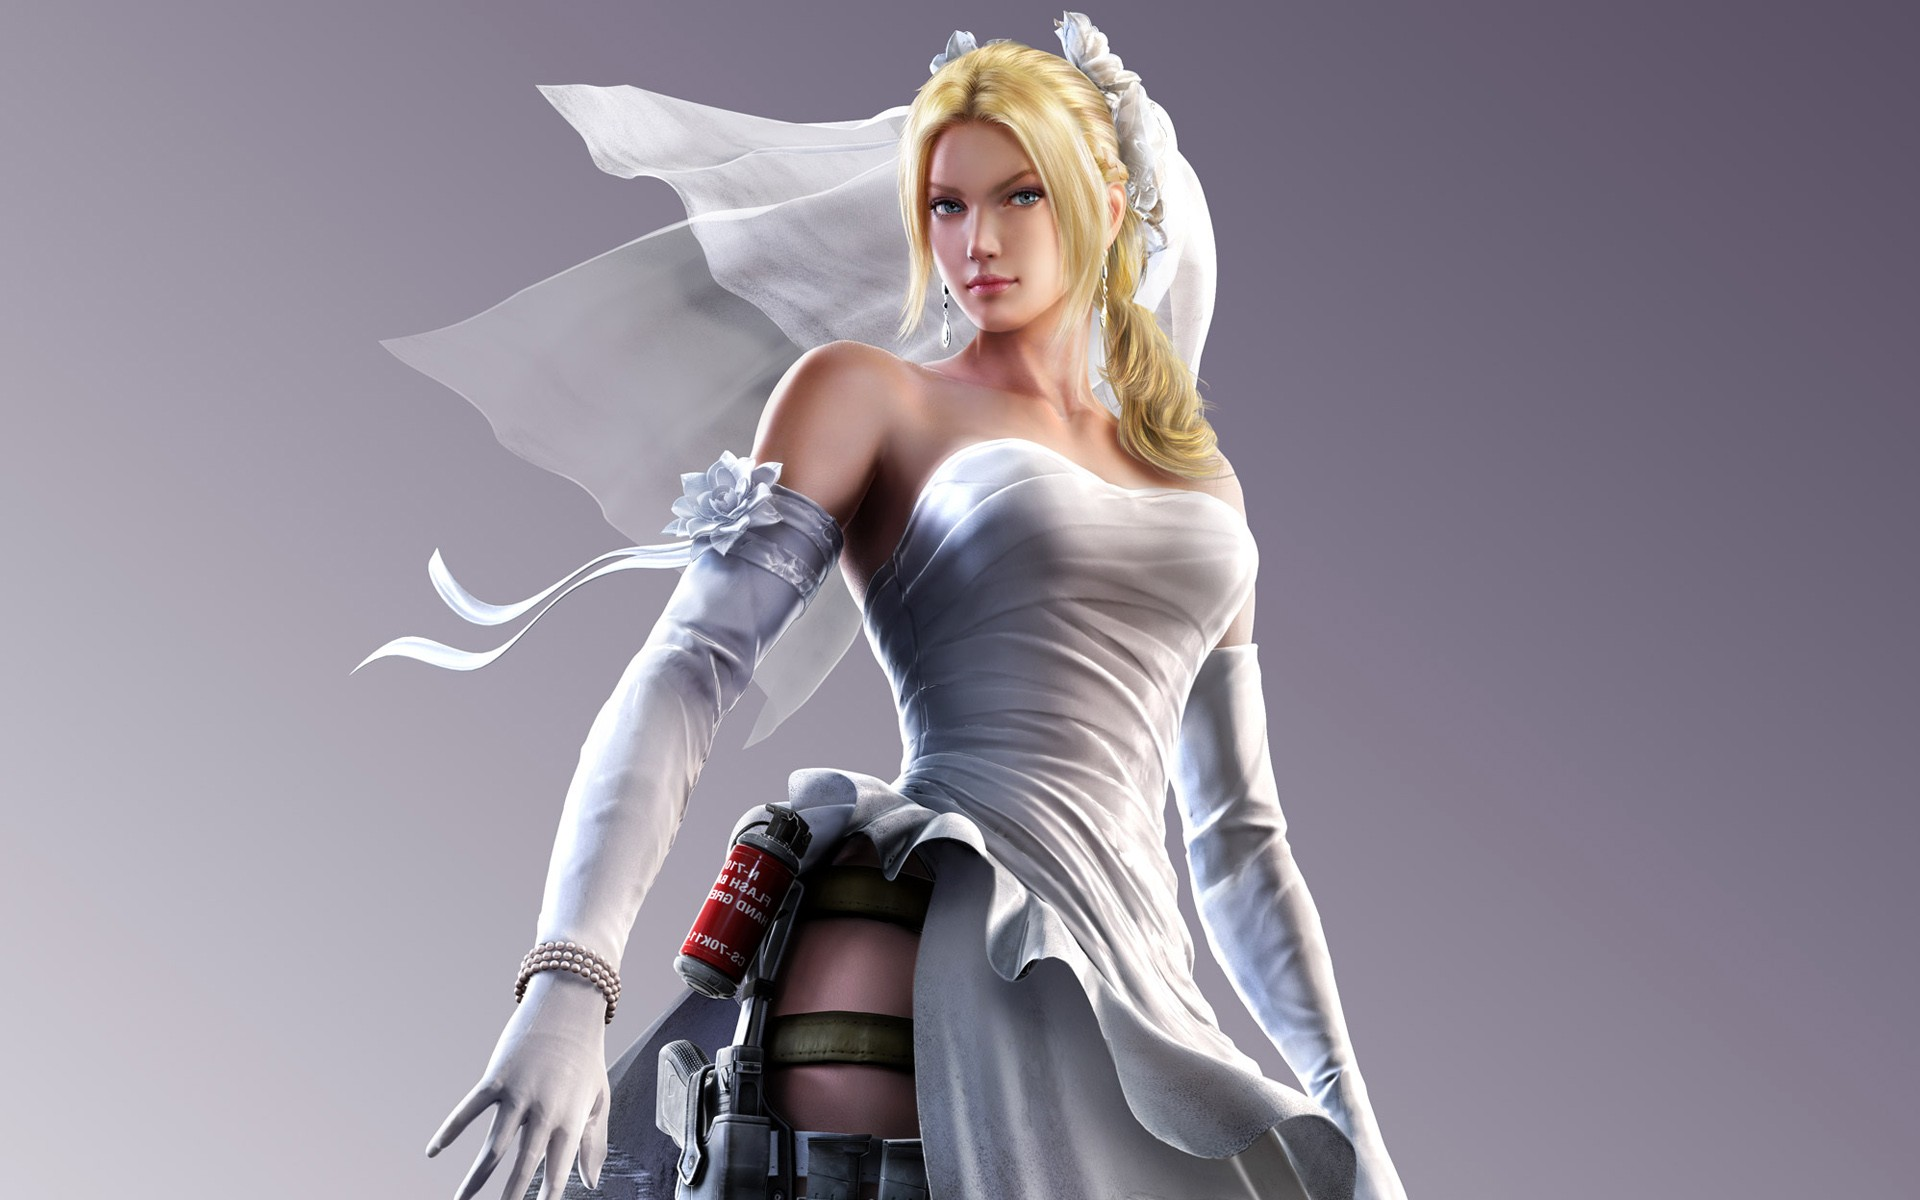 Street Fighter X Tekken Nina Williams Hd Fantasy Girls 4k